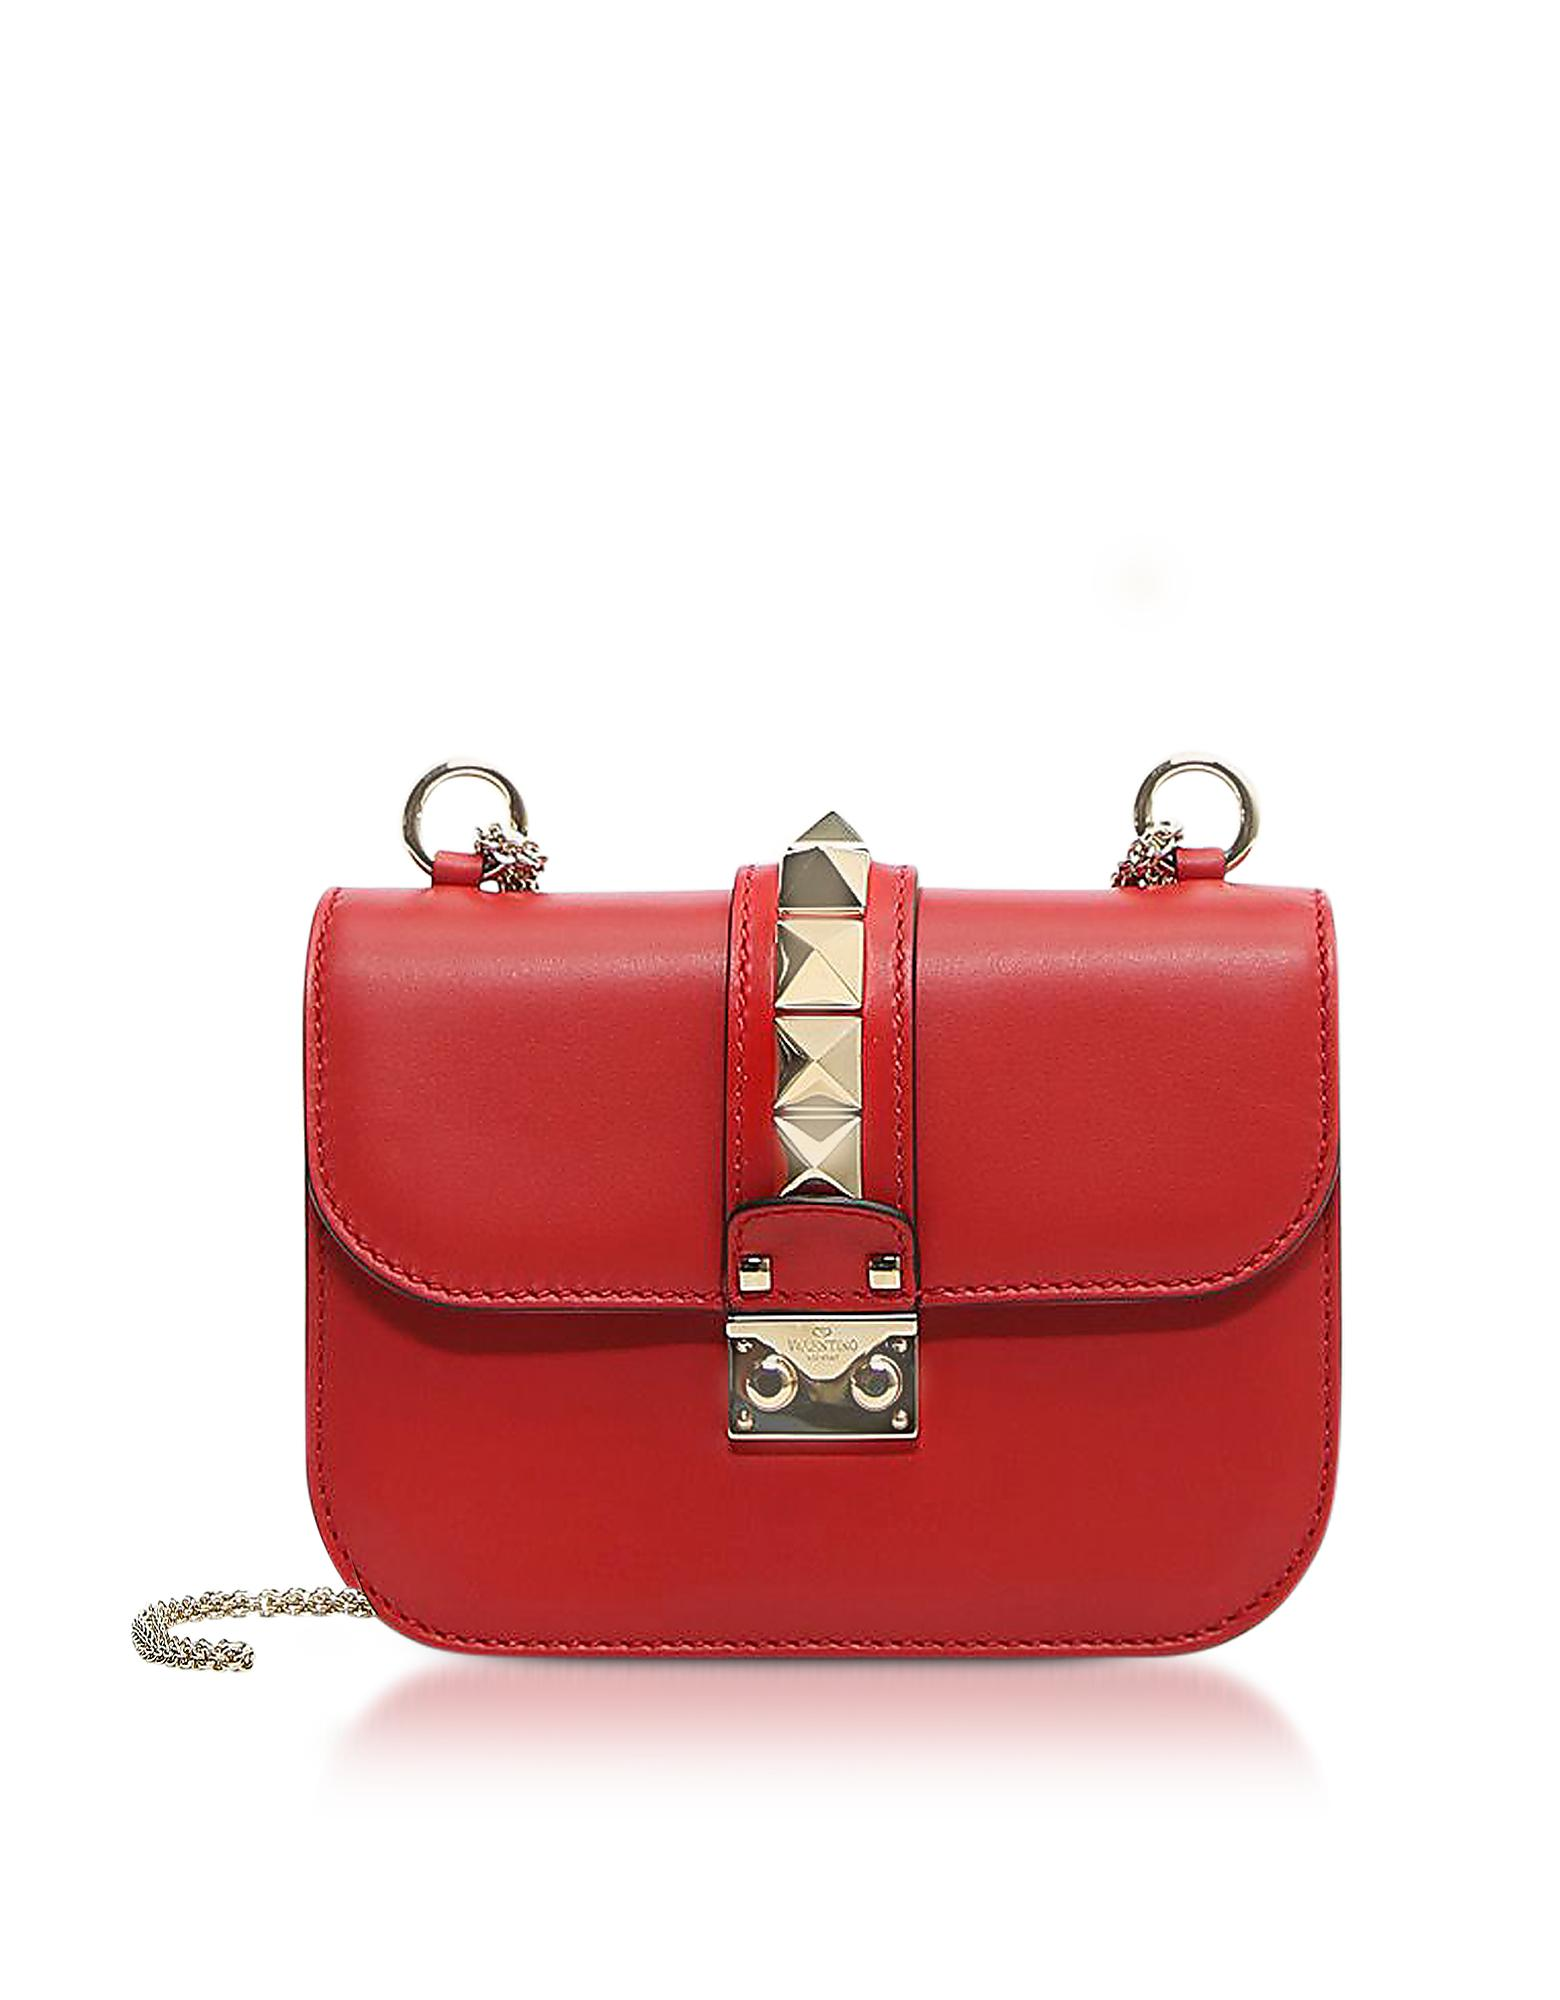 4649054c875 Lyst - Valentino Lock Small Red Leather Chain Shoulder Bag in Red